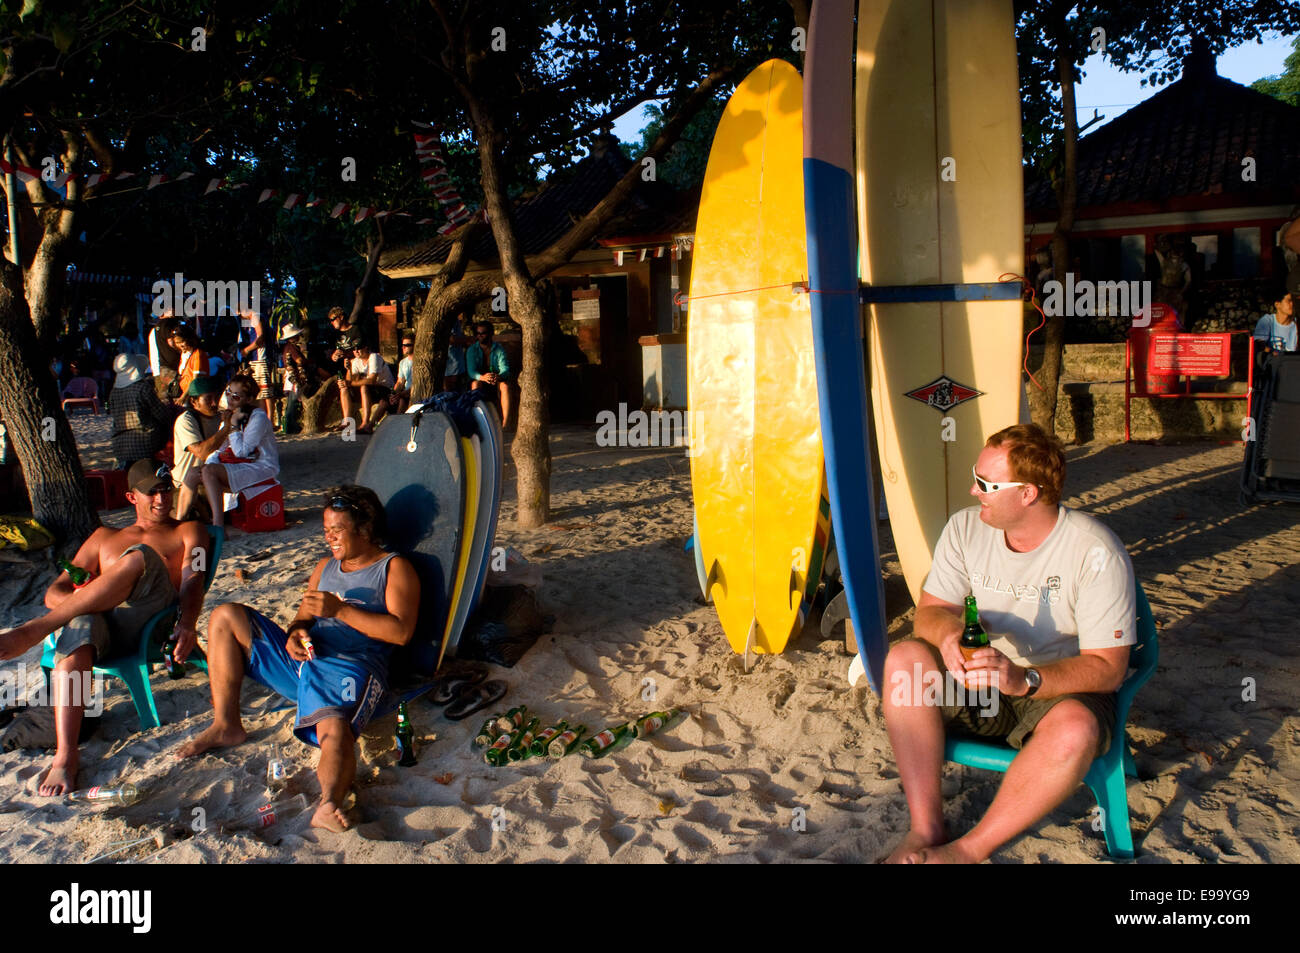 Beach of Kuta at sunset. Surfing lessons. Bali. Kuta is a coastal town in the south of the island of Lombok in Indonesia. Stock Photo